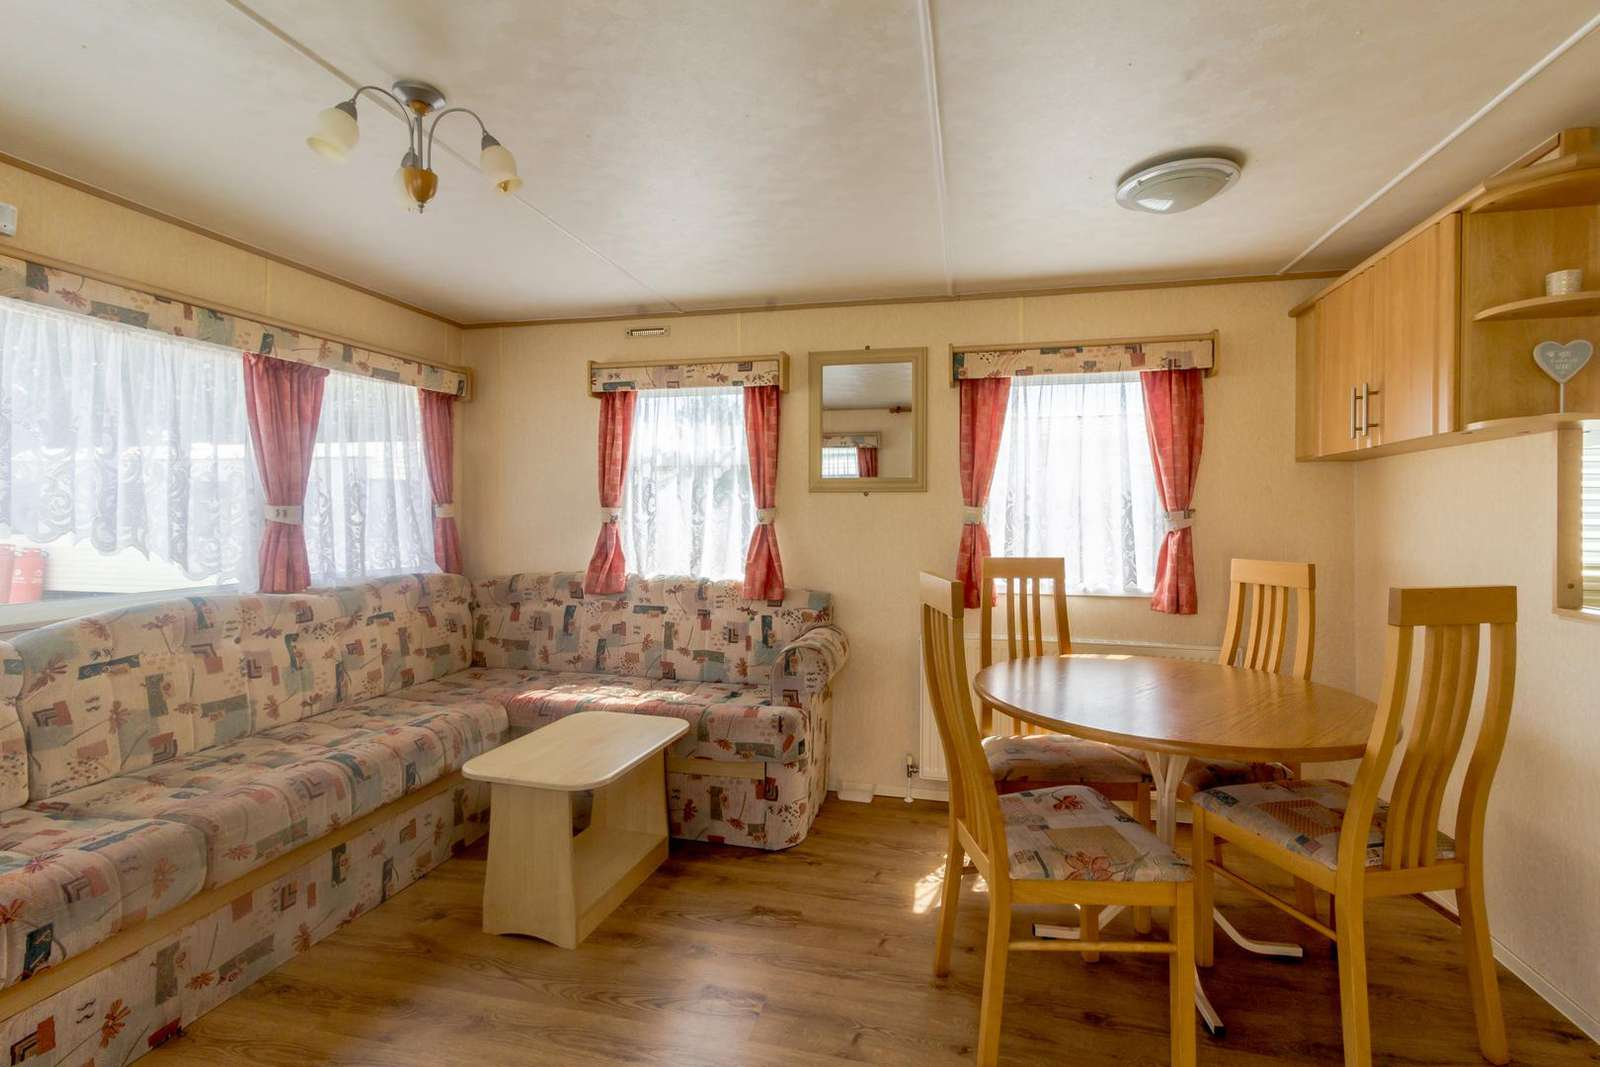 Great place to dine with friends and family in this self-catering accommodation